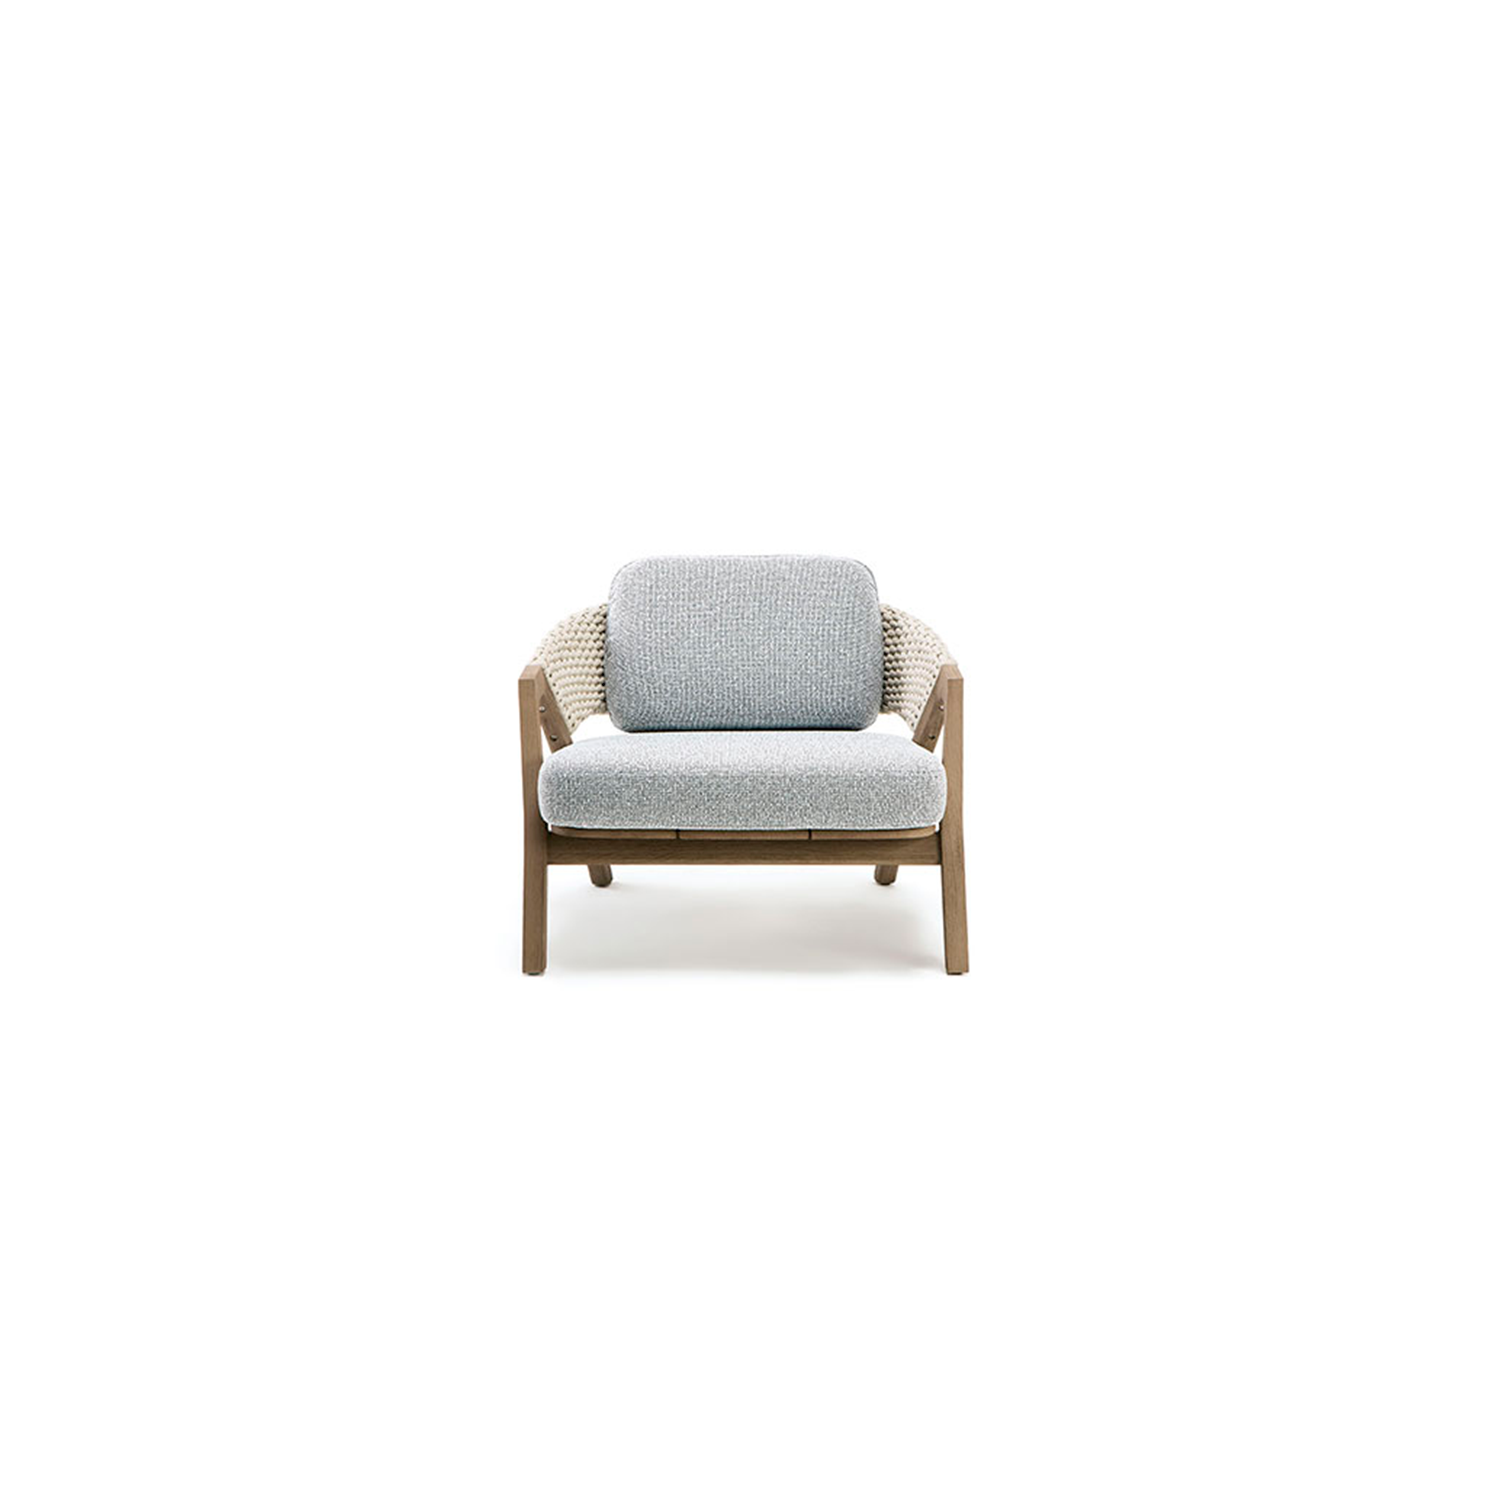 Knit Armchair - Knit is a complete line of tables, chairs and lounge chairs in teak and woven rope that expresses with refinement a perfect synthesis of aesthetics, functionality and ergonomics. The iconic collection is enriched by the new version in pickled teak and light gray rope and the rocking version of the lounge chair with high back, thus offering a new and special interpretation of the classic bergère.  Seat and back cushions available at extra cost. Please enquire for more information.   Matter of Stuff